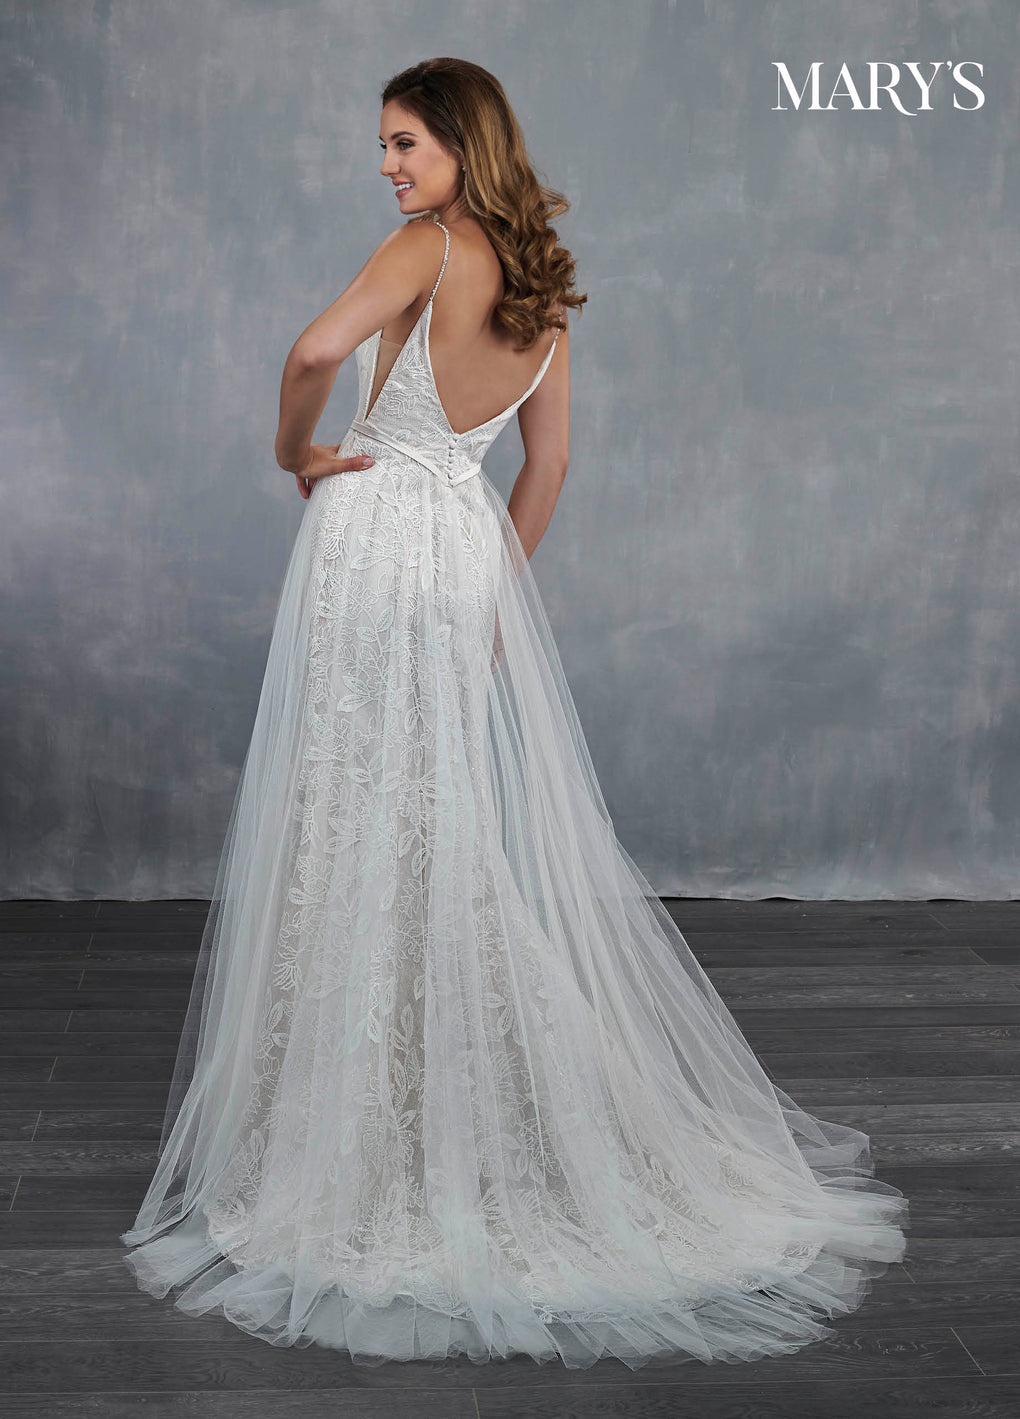 Bridal Wedding Dresses in Ivorry/Sand, Ivory, or White Color